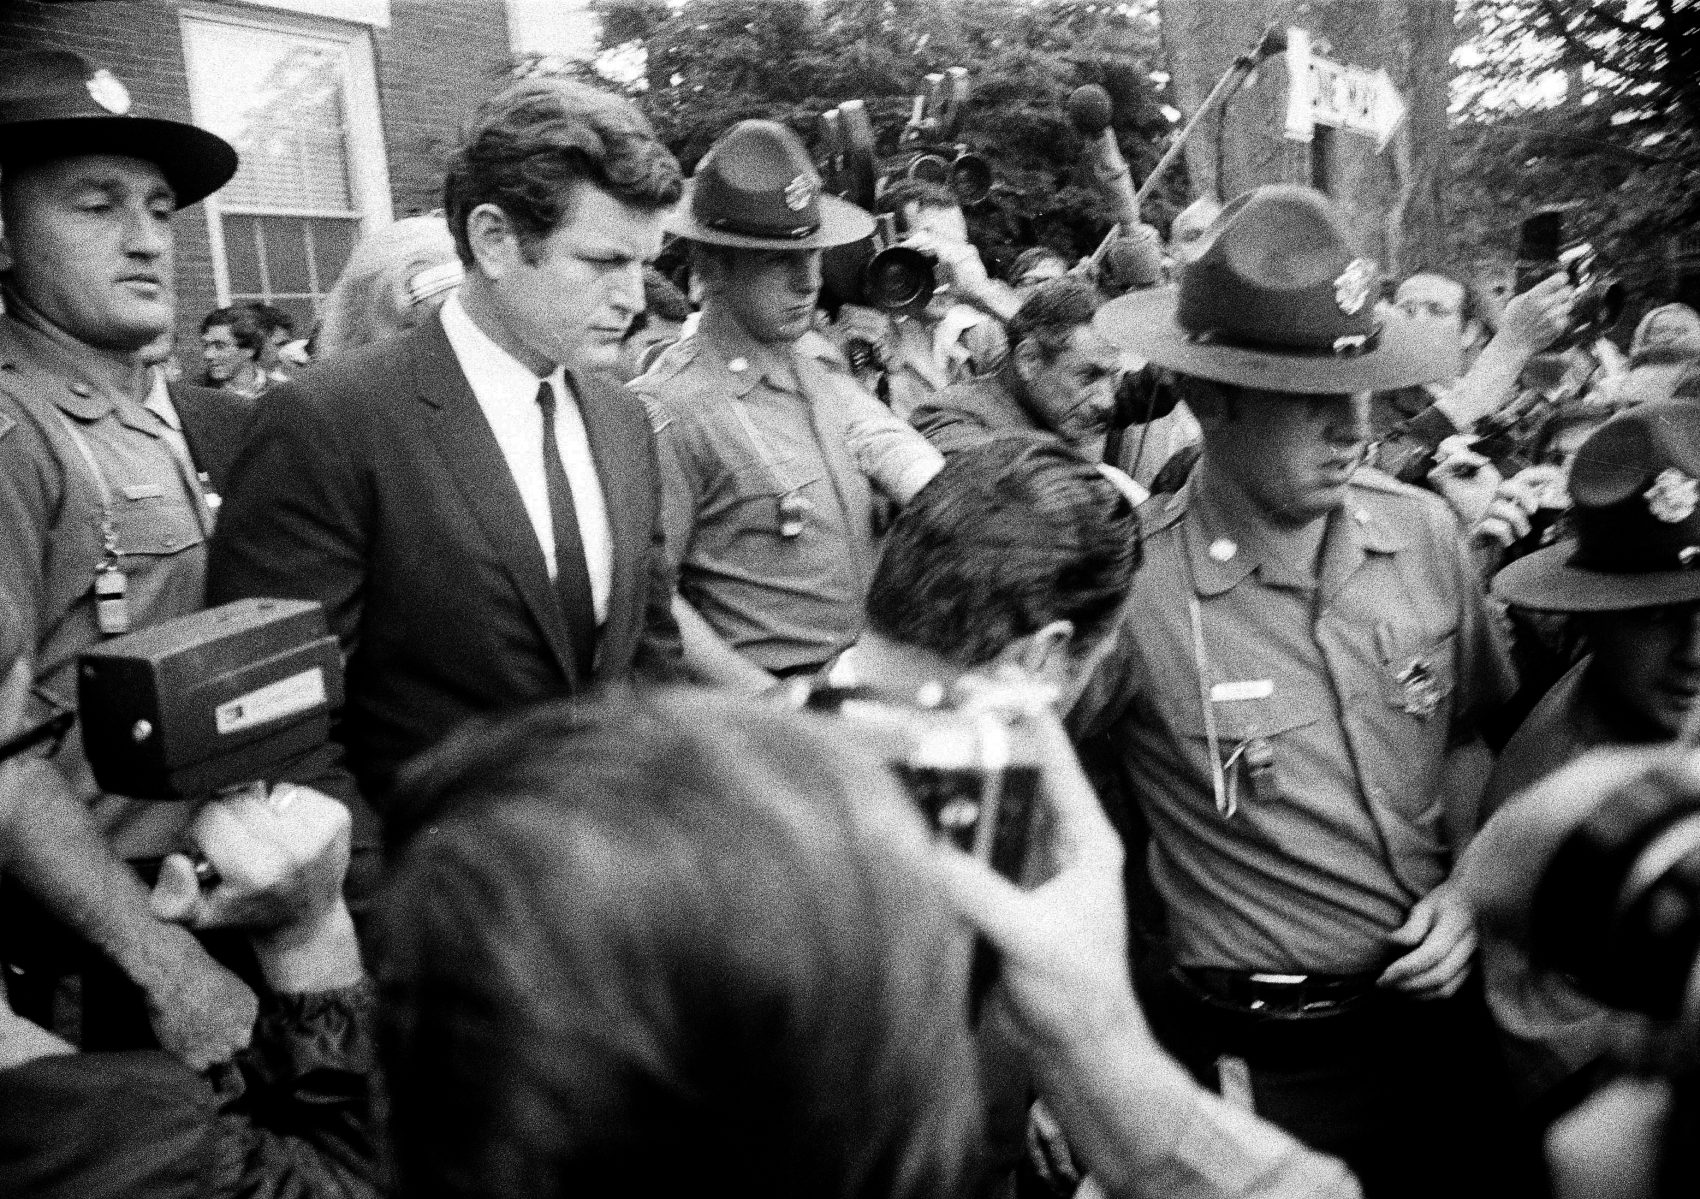 Sen. Edward M. Kennedy is escorted by troopers as he leaves court in Edgartown on, July 25, 1969, after pleading guilty to charge of leaving the scene of an accident. (Frank C. Curtin/AP)